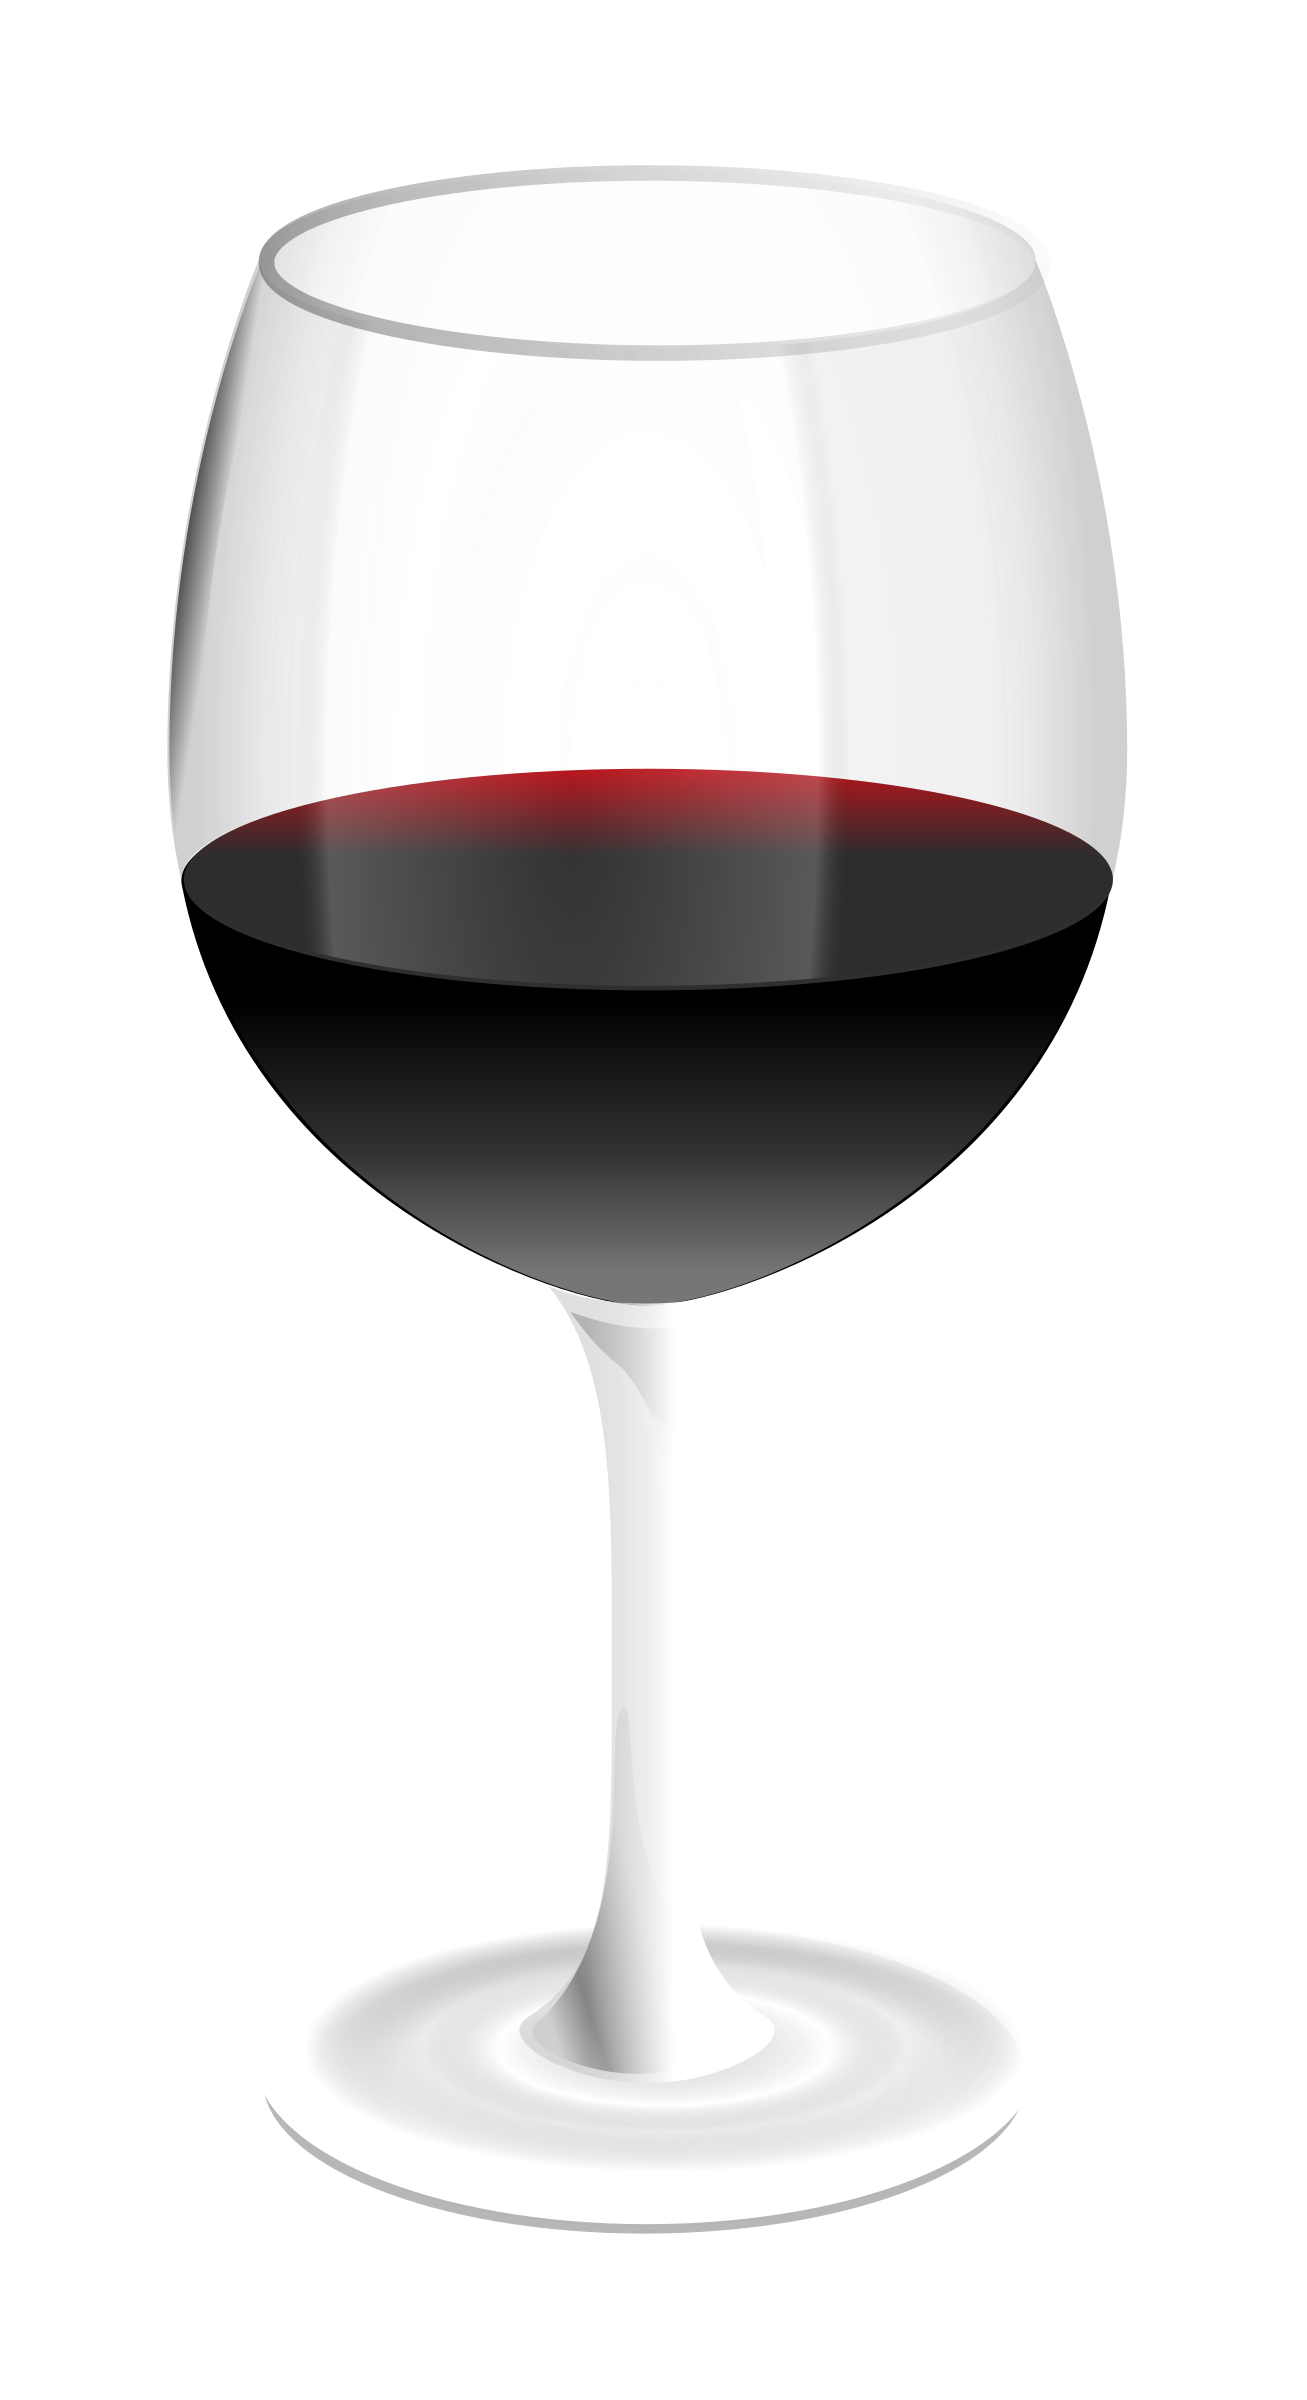 Big image png for Large red wine glass